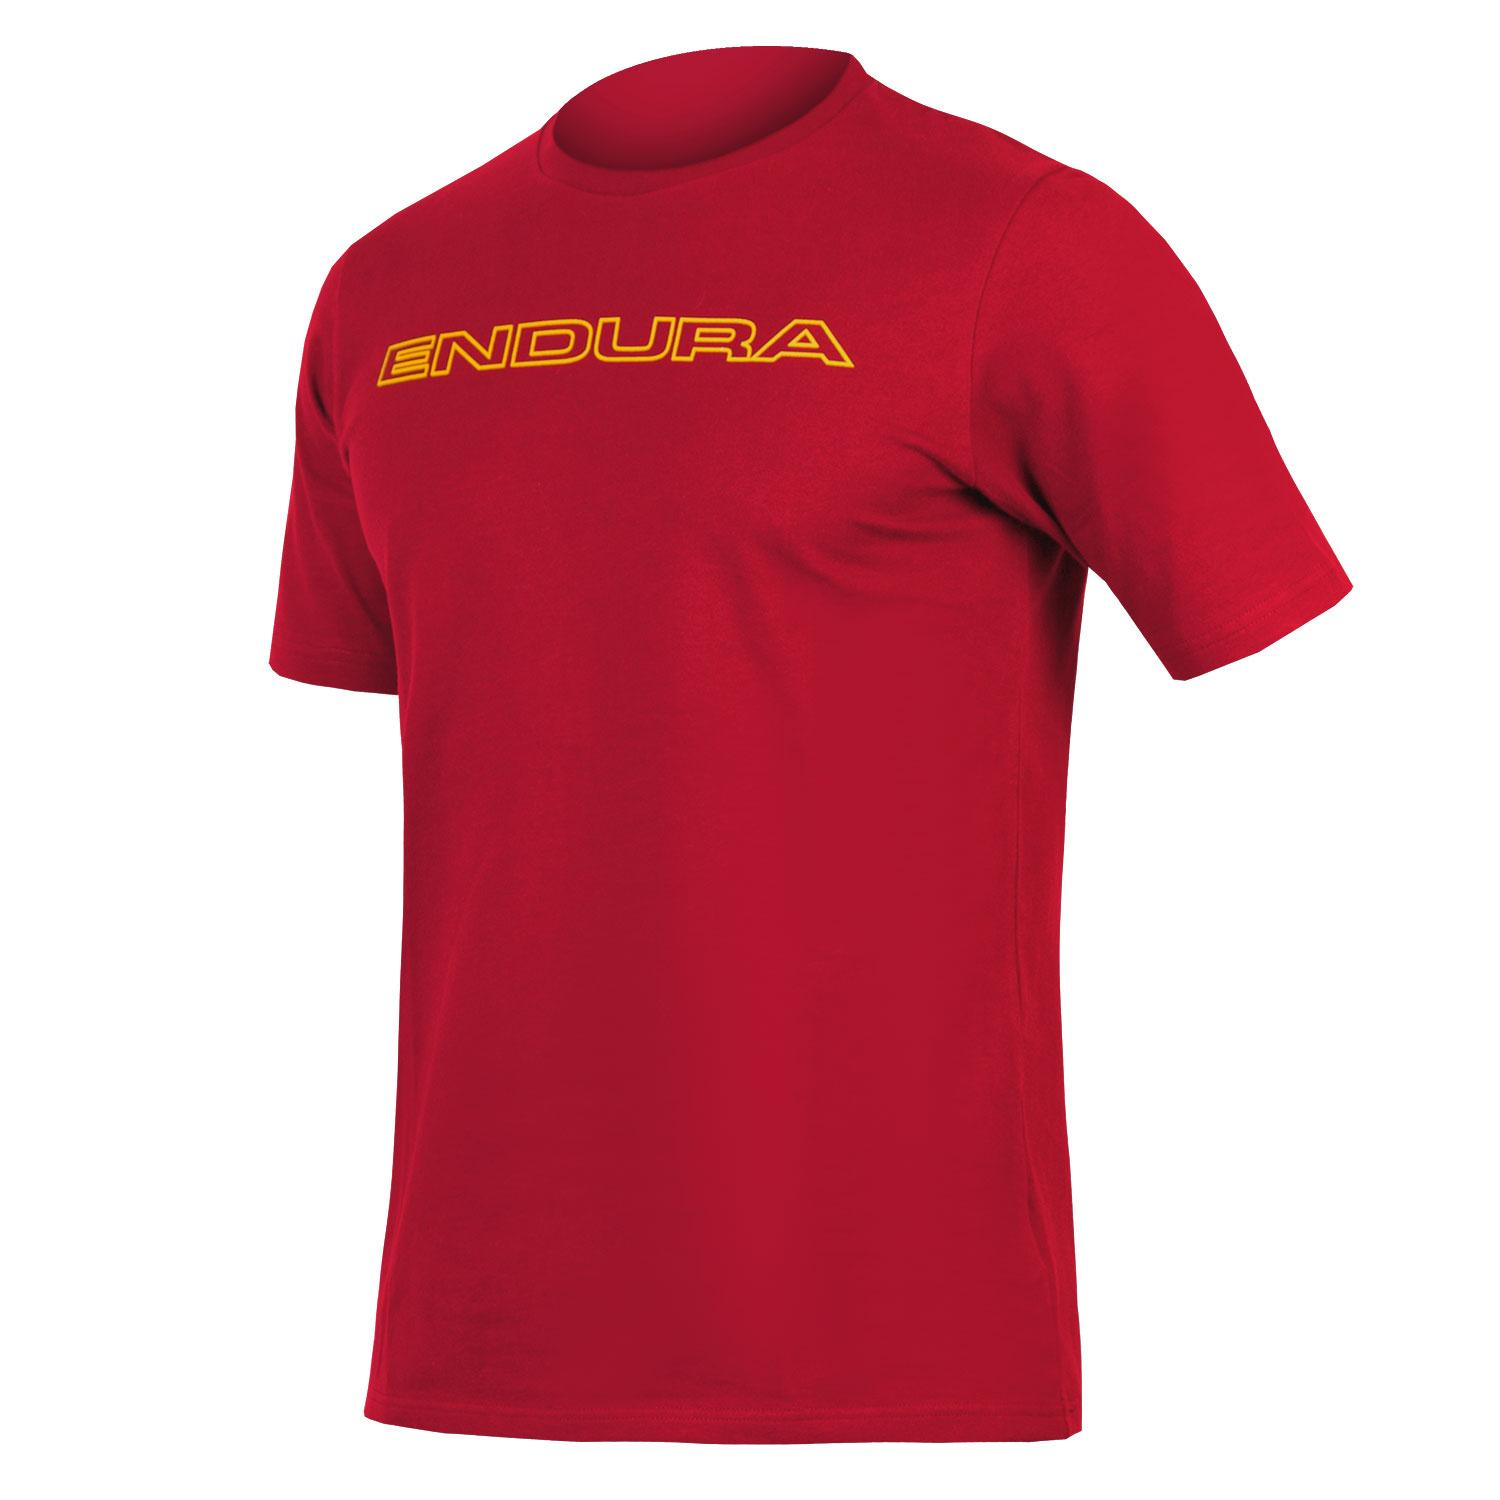 Endura Casual Fietskleding Heren Rood - One Clan Carbon Tshirt Roest Rood